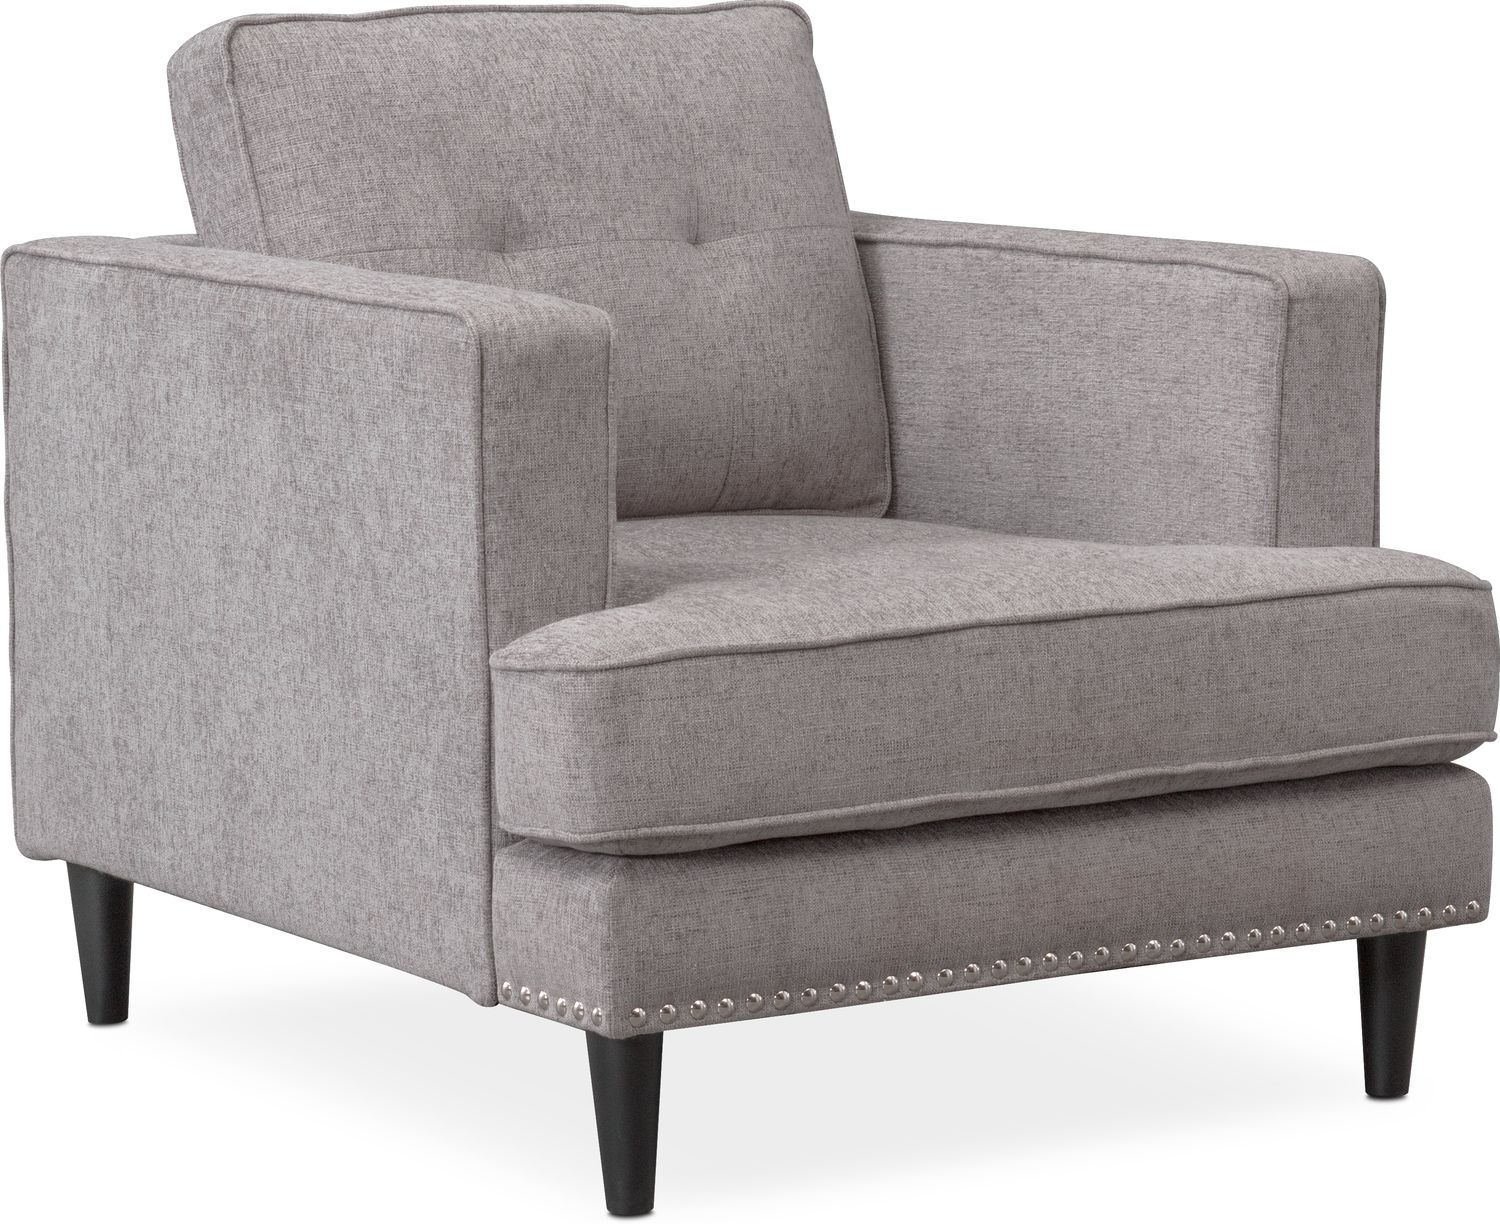 Parker Sofa, Chair And Ottoman Set | Value City Furniture And Mattresses For Rory Sofa Chairs (Image 7 of 20)